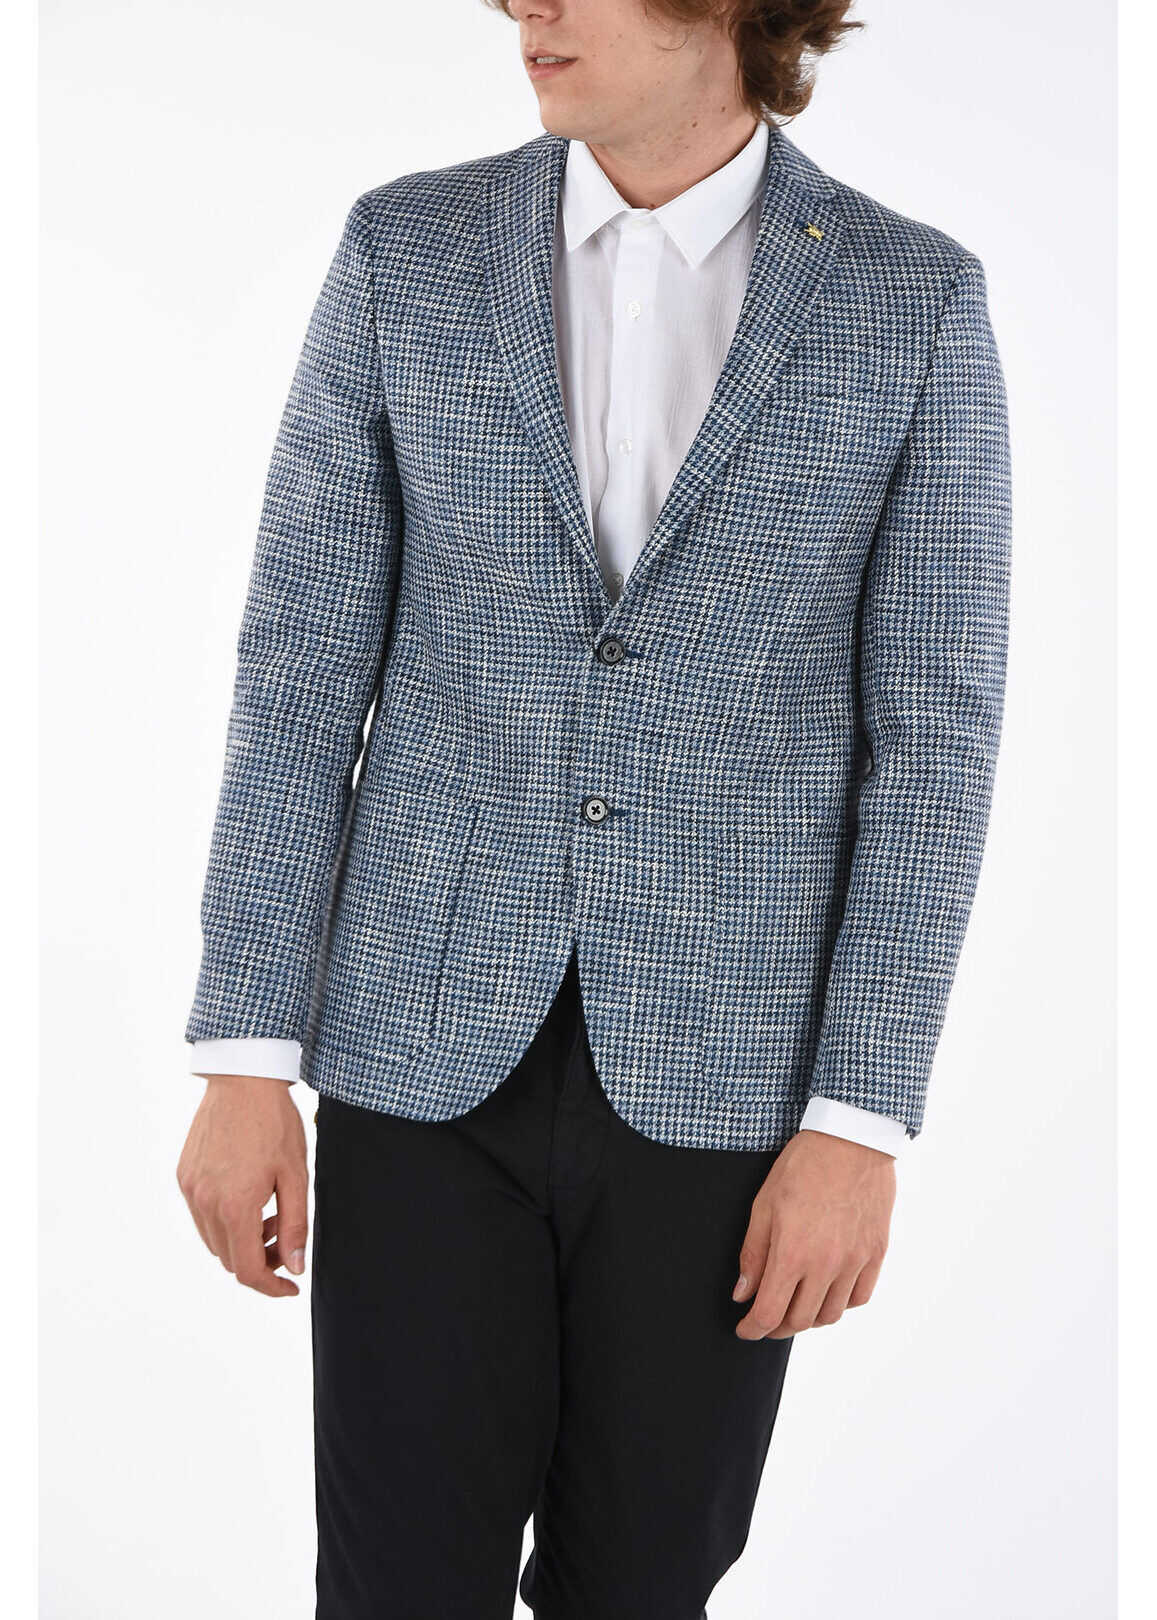 CORNELIANI CC COLLECTION houndstooth RIGHT side vents 2-button blazer BLUE imagine